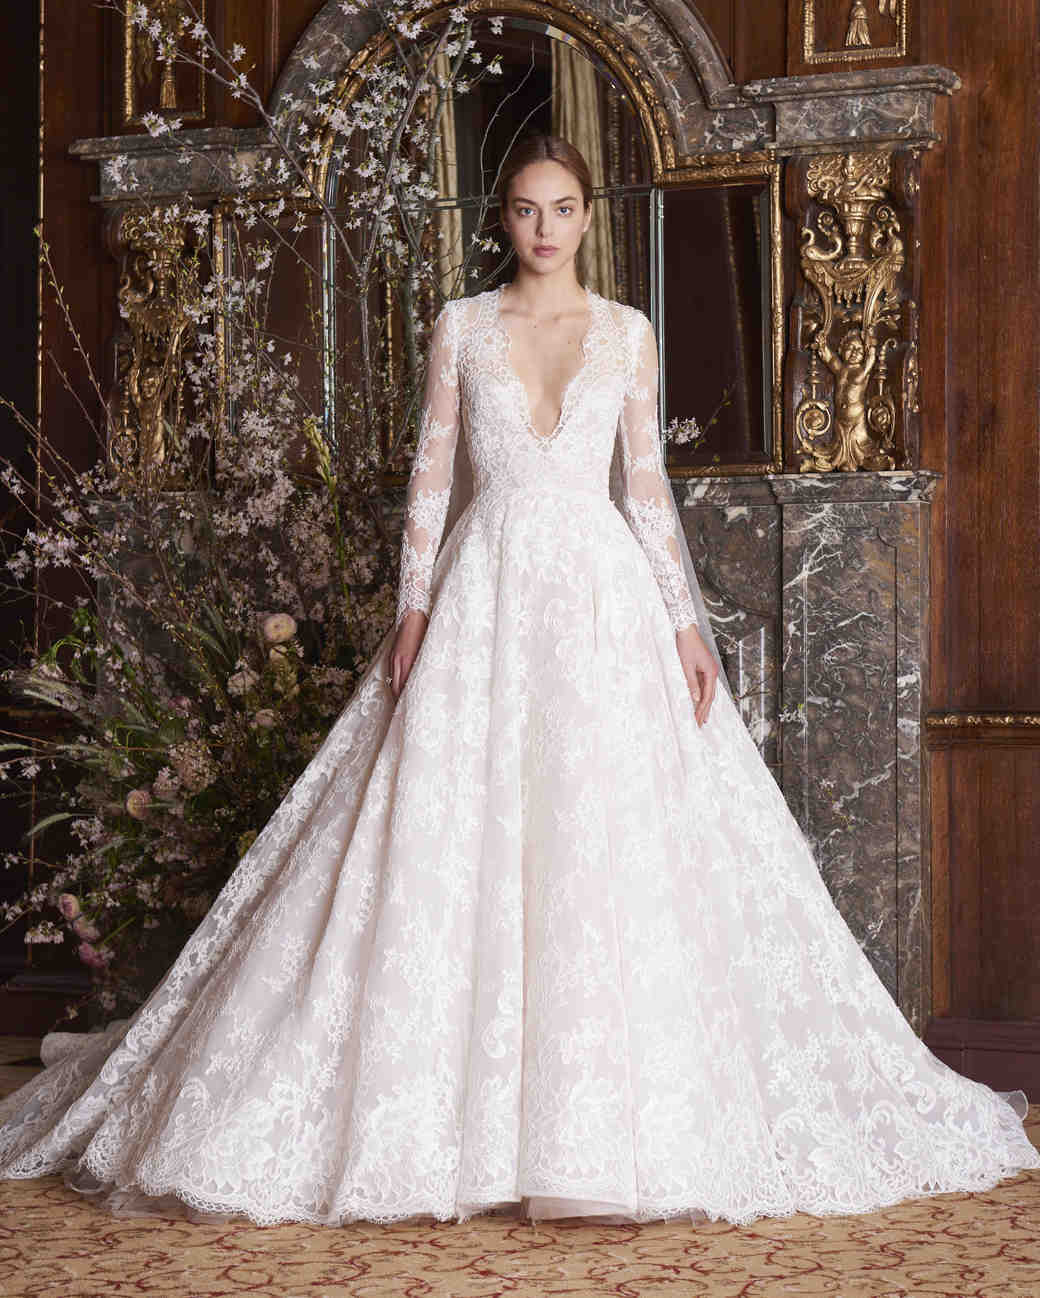 Long sleeved wedding dresses we love martha stewart weddings monique lhuillier wedding dress spring 2019 v neck long sleeve junglespirit Images